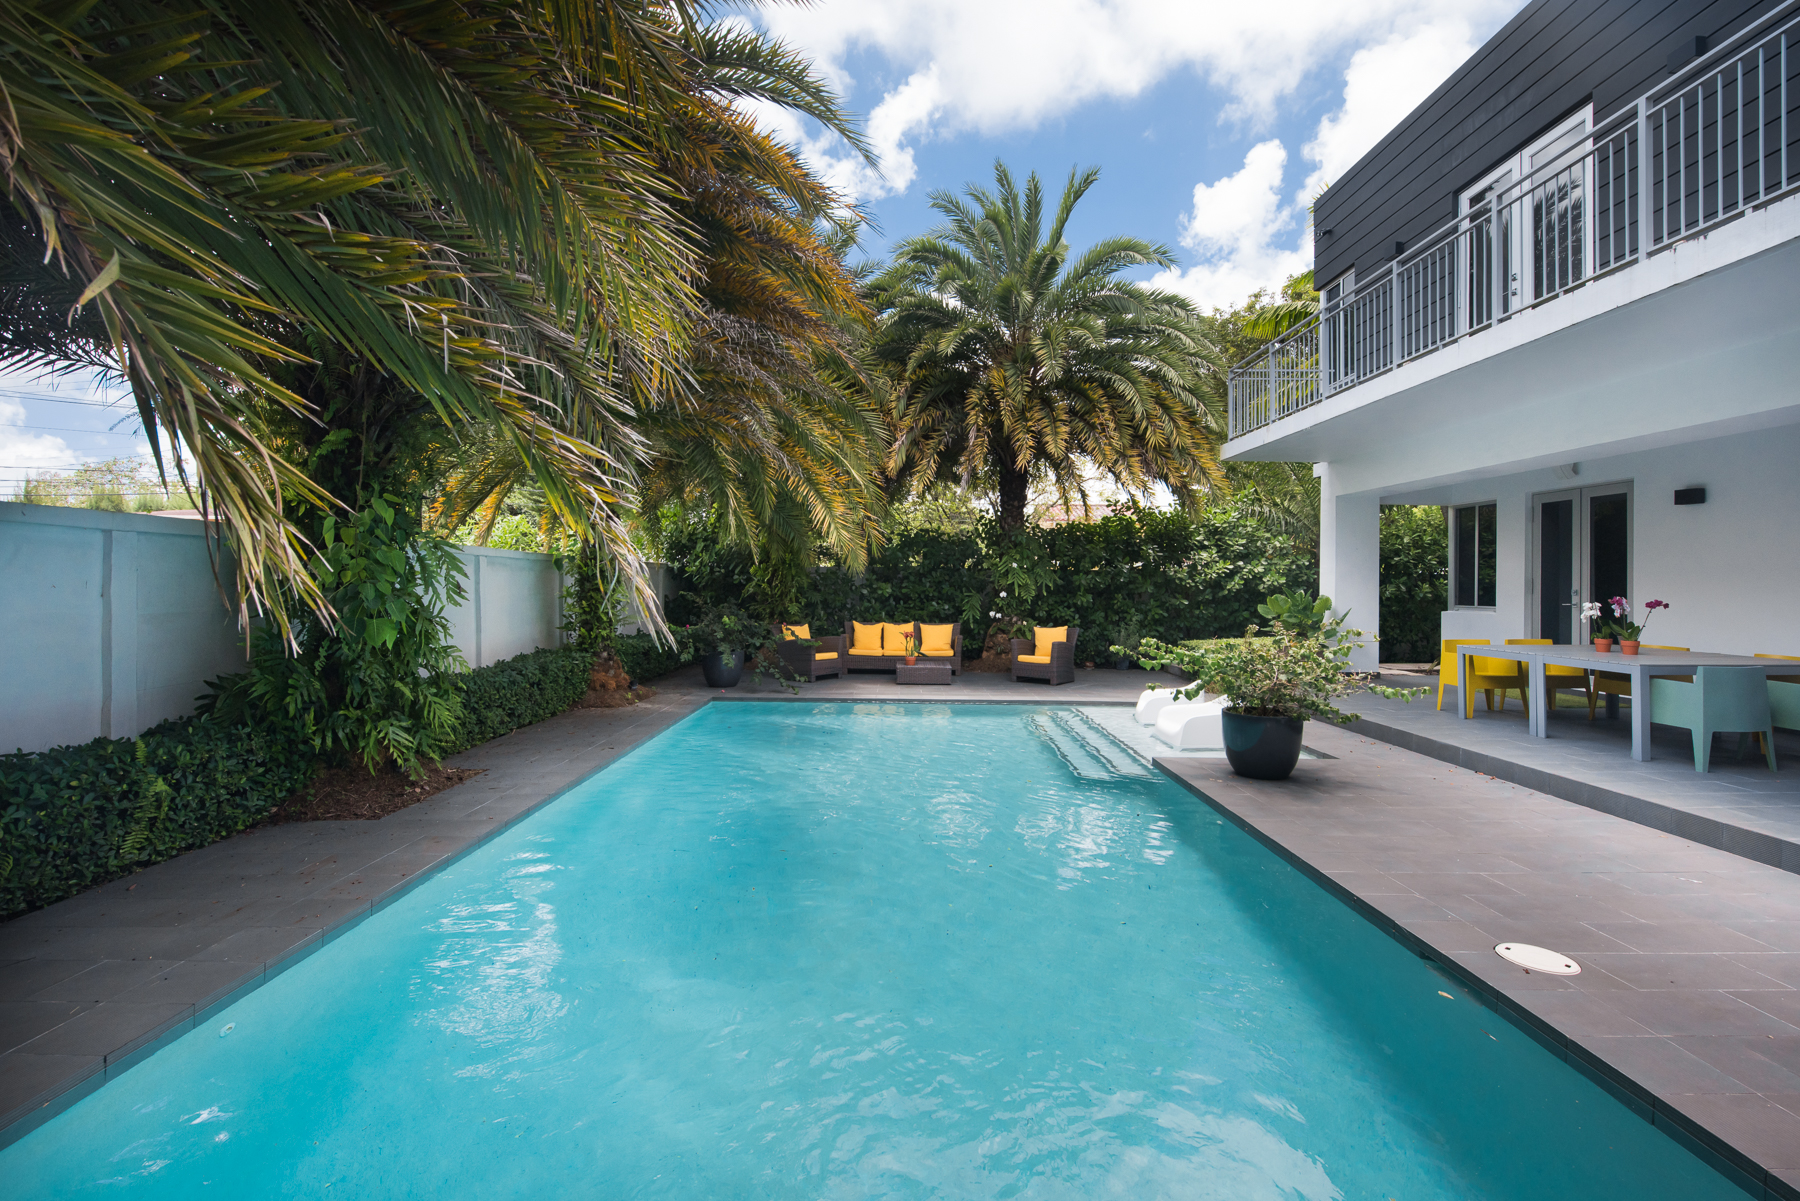 22 Refreshing Tropical Pool and Patio